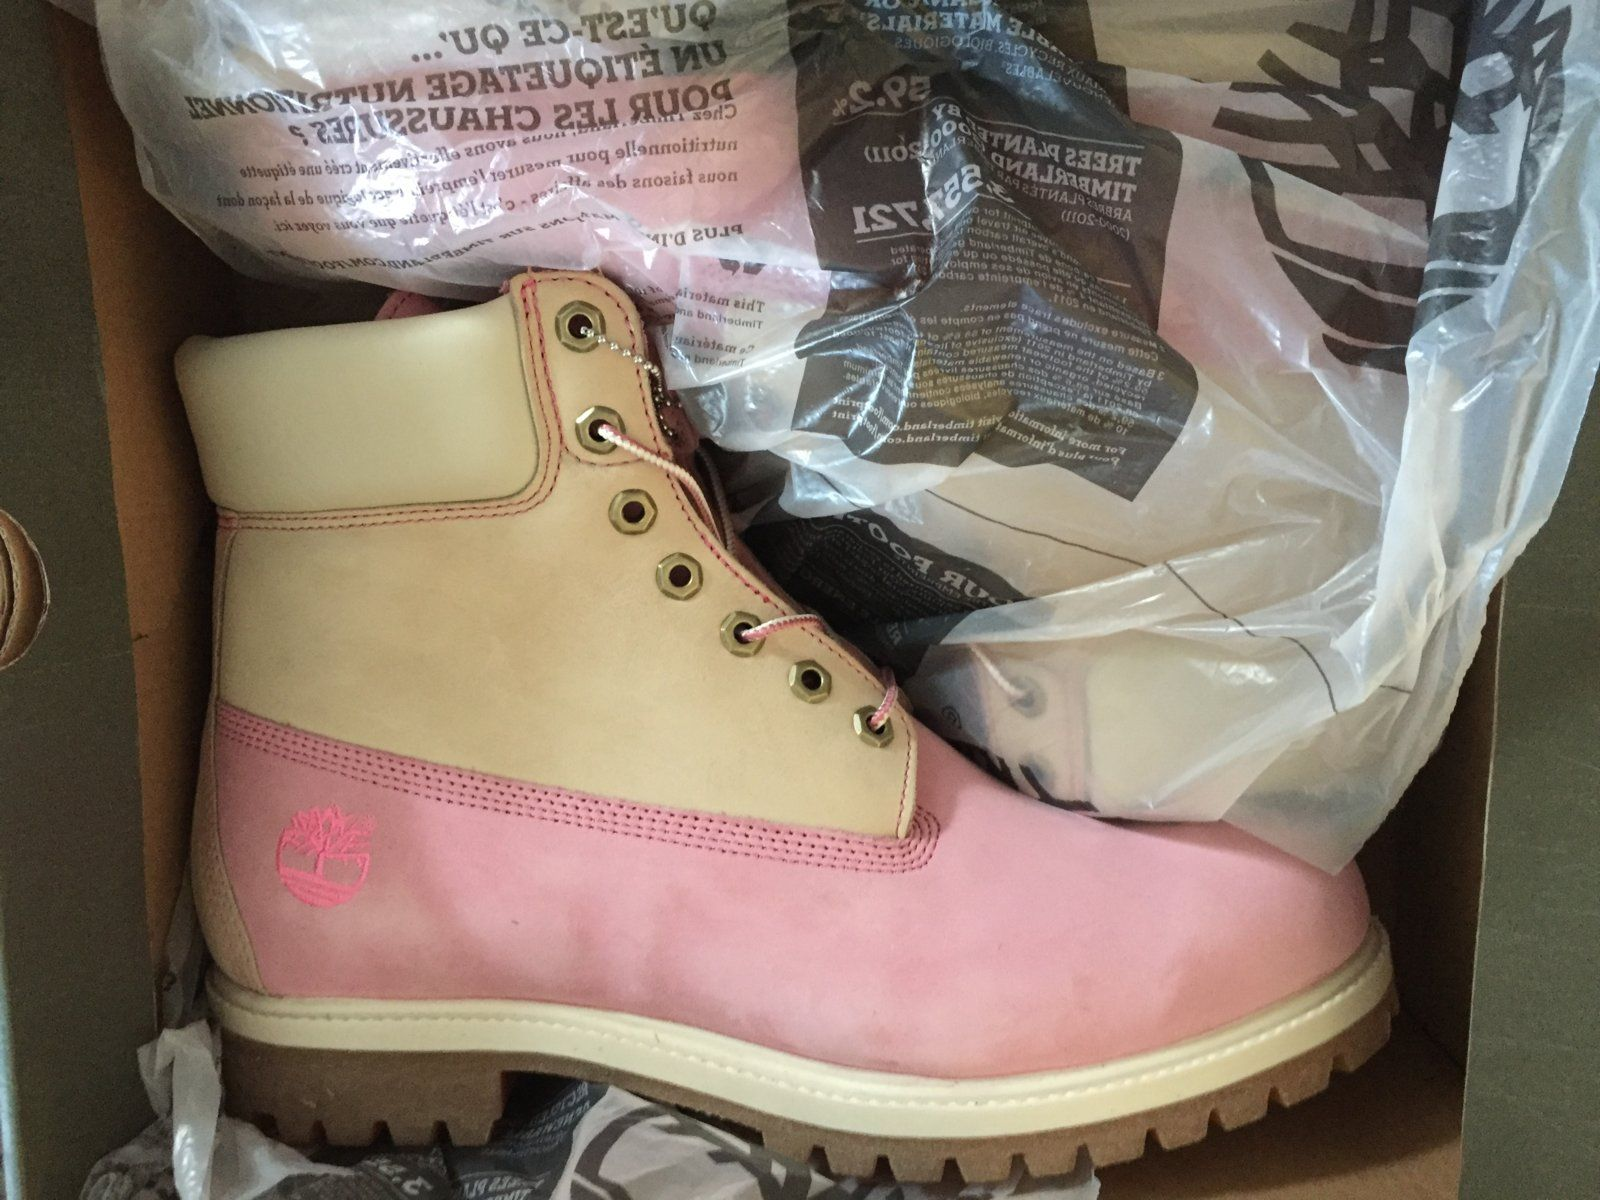 93ec8184ea90 Any other fans of the Timberland 6 inch boot  - IMG 3634.JPG